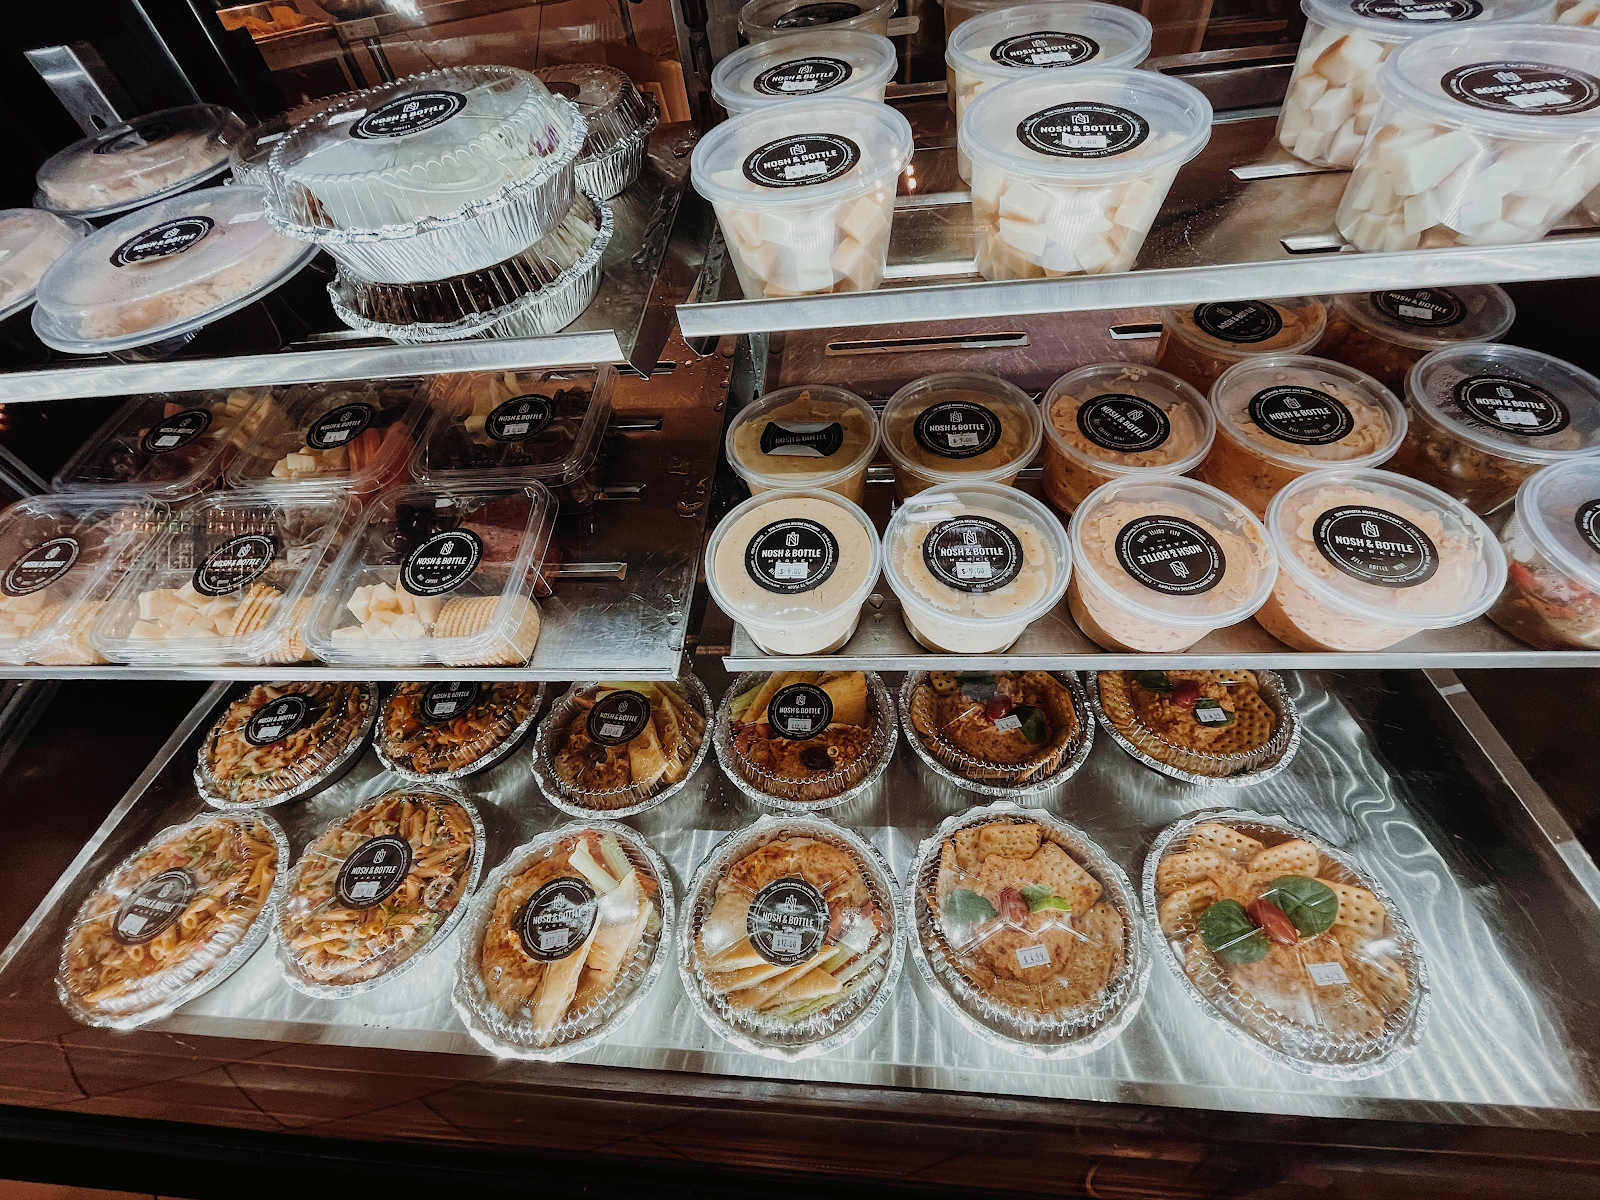 To-go foods from Nosh & Bottle in Irving, TX